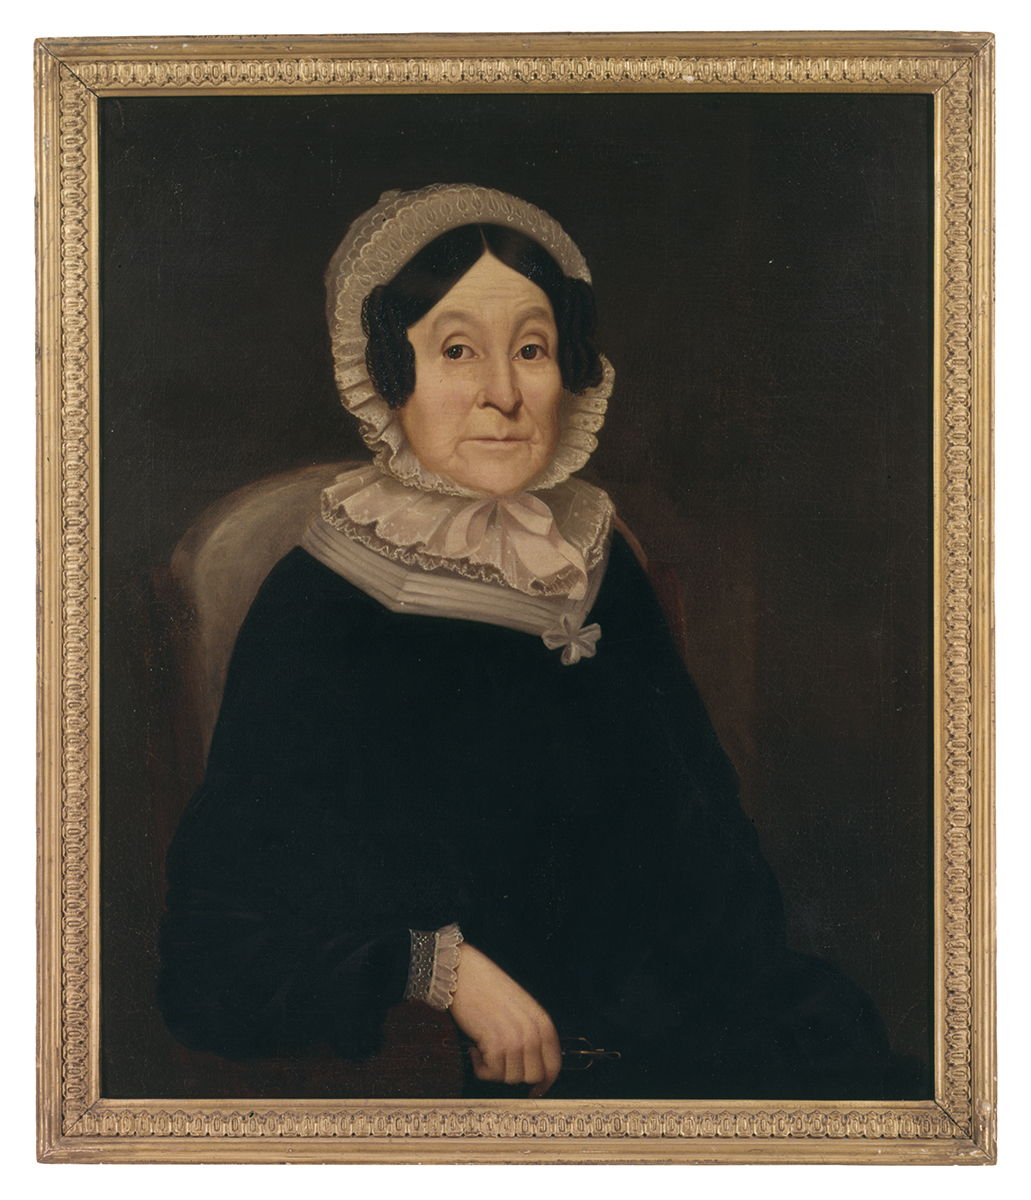 Painting of seated woman in dark dress with light collar and hat